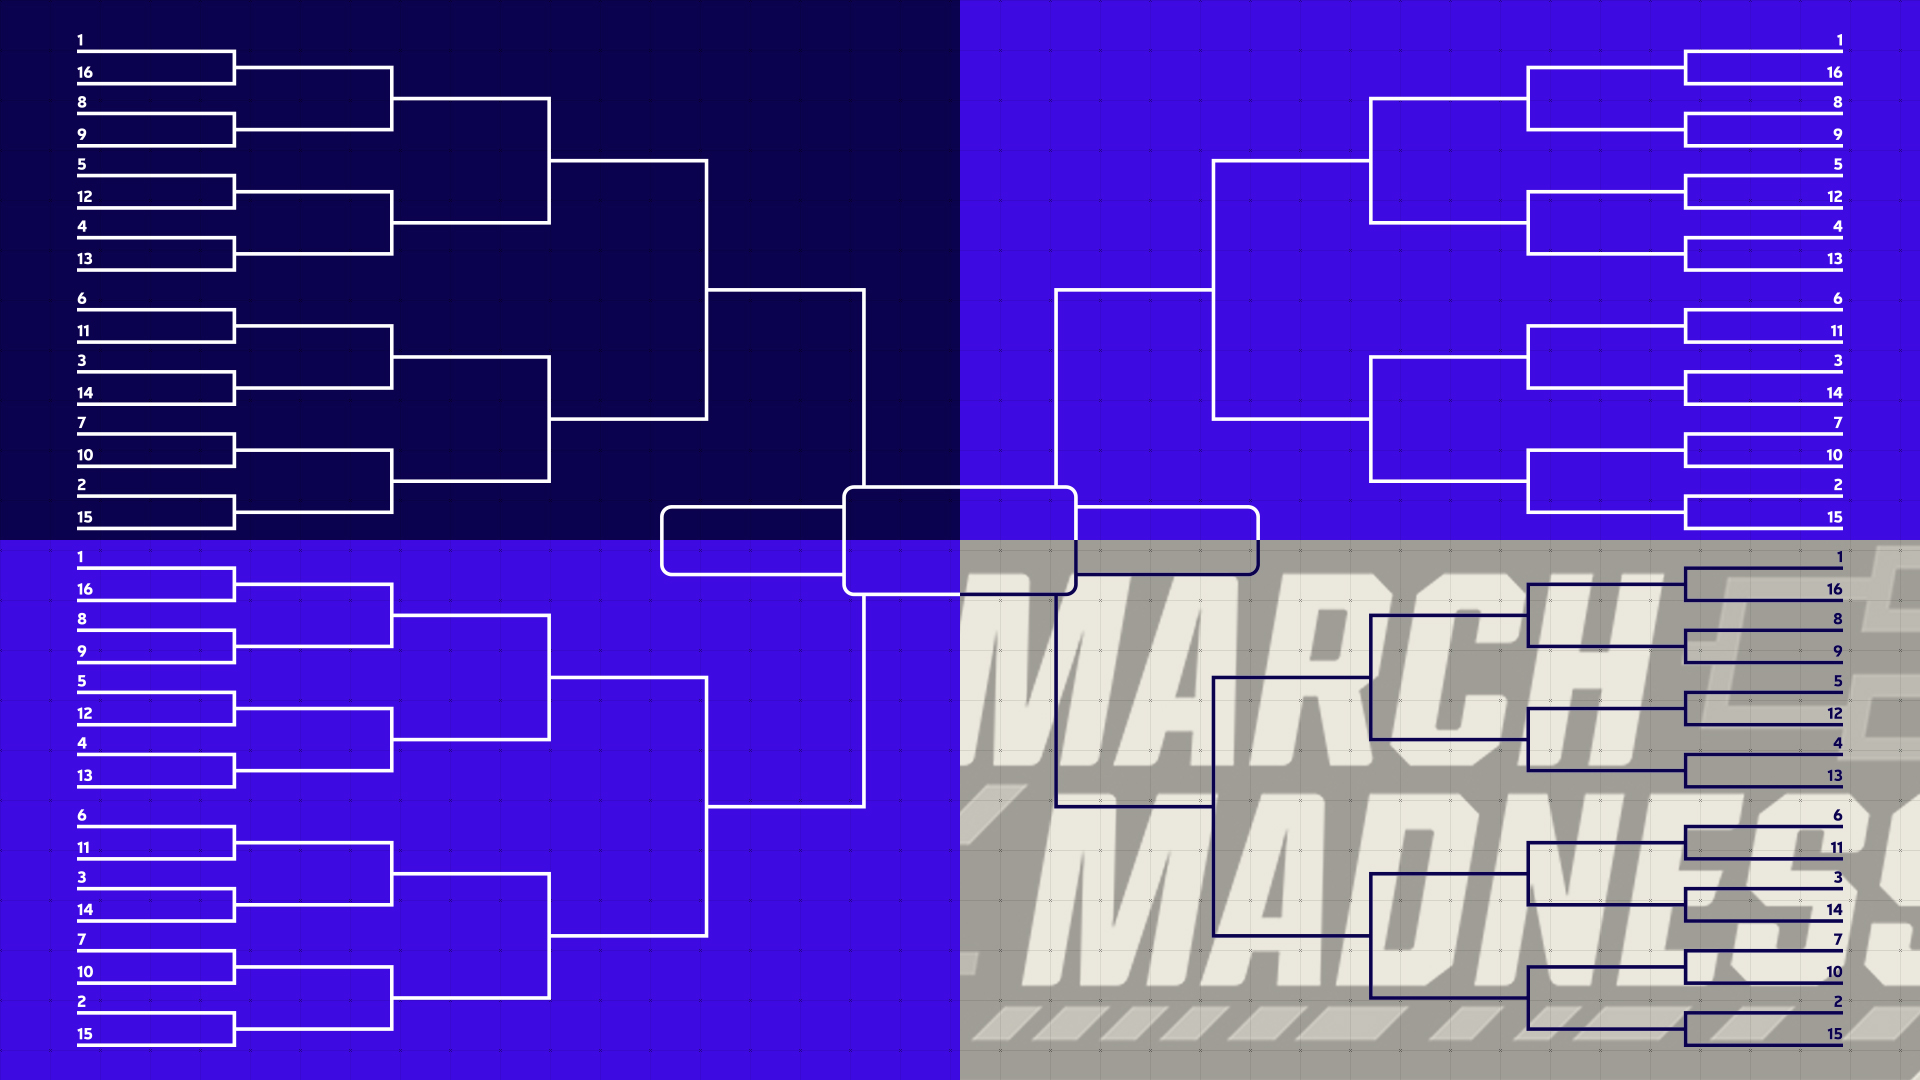 Missing March Madness 2020: resultados de la votación de la Final Four del torneo de la NCAA 34